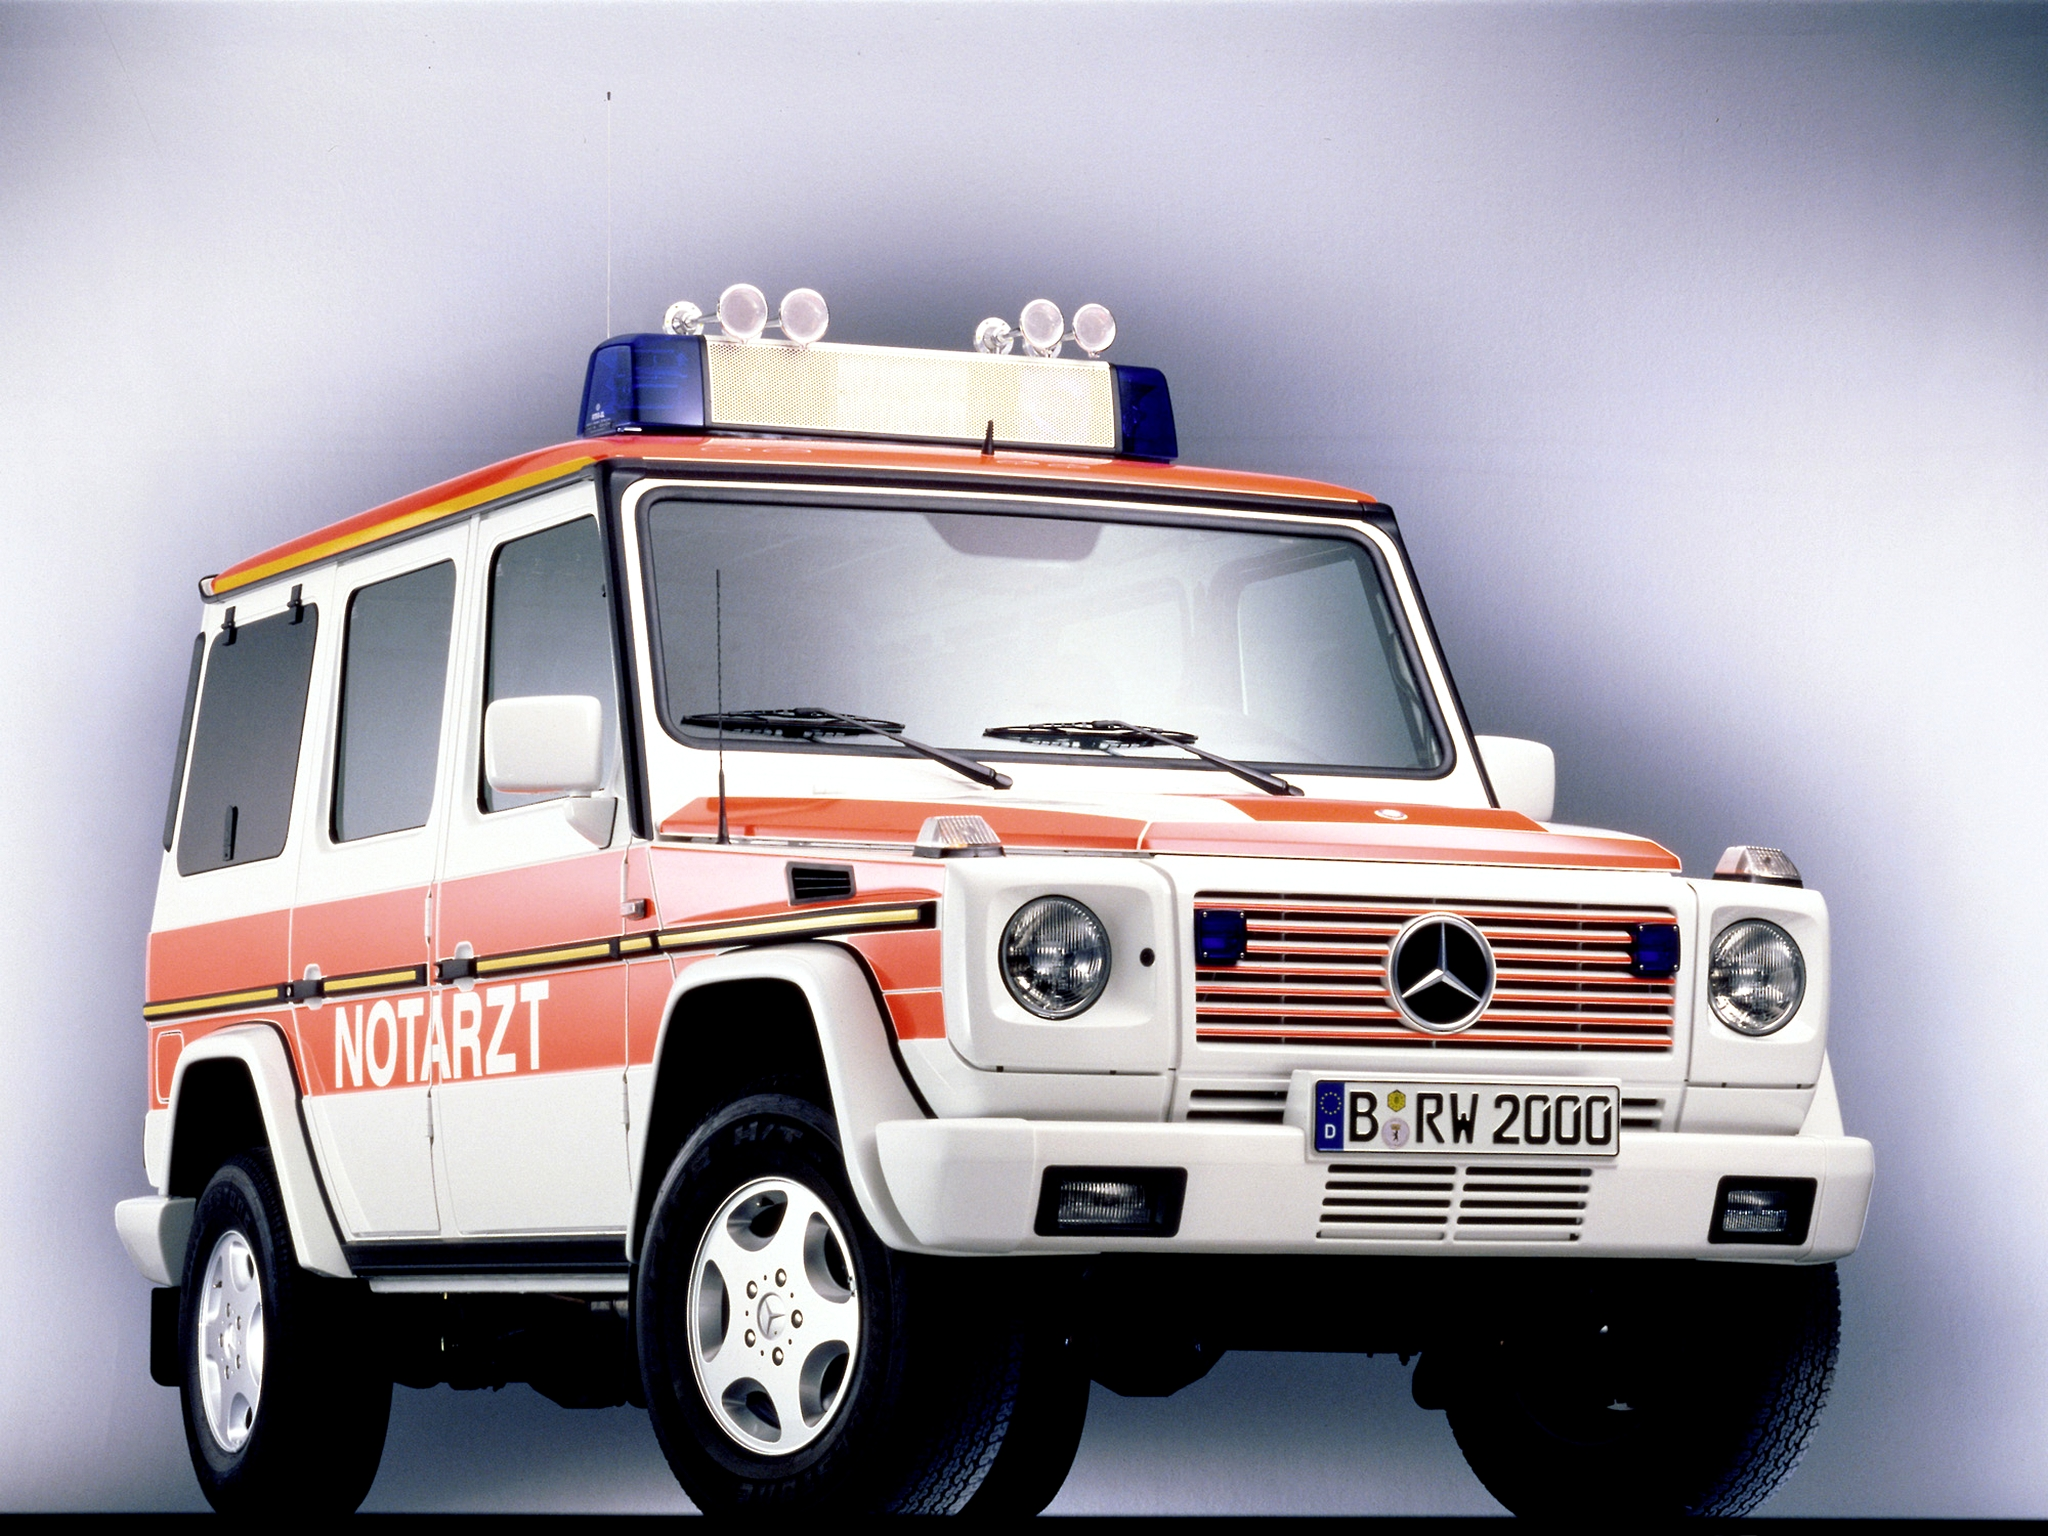 1993 mercedes benz g klasse notarzt w463 ambulance for Mercedes benz emergency